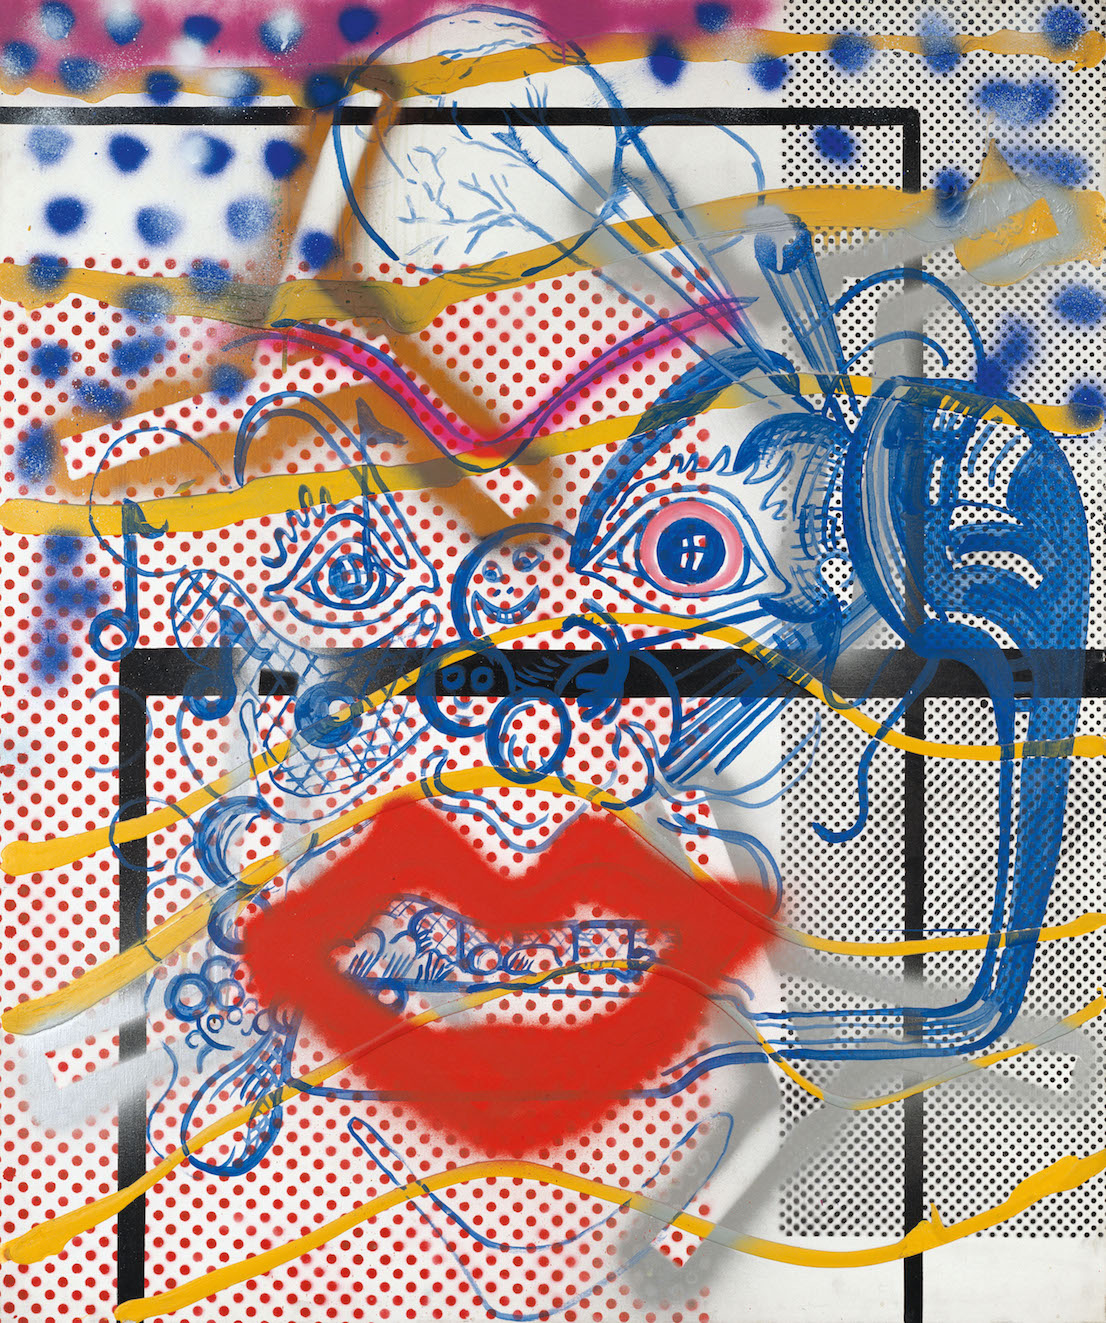 Sigmar Polke (1941 - 2010) Dr Berlin 1969-74 Private Collection © The Estate of Sigmar Polke / DACS, London / VG Bild-Kunst, Bonn